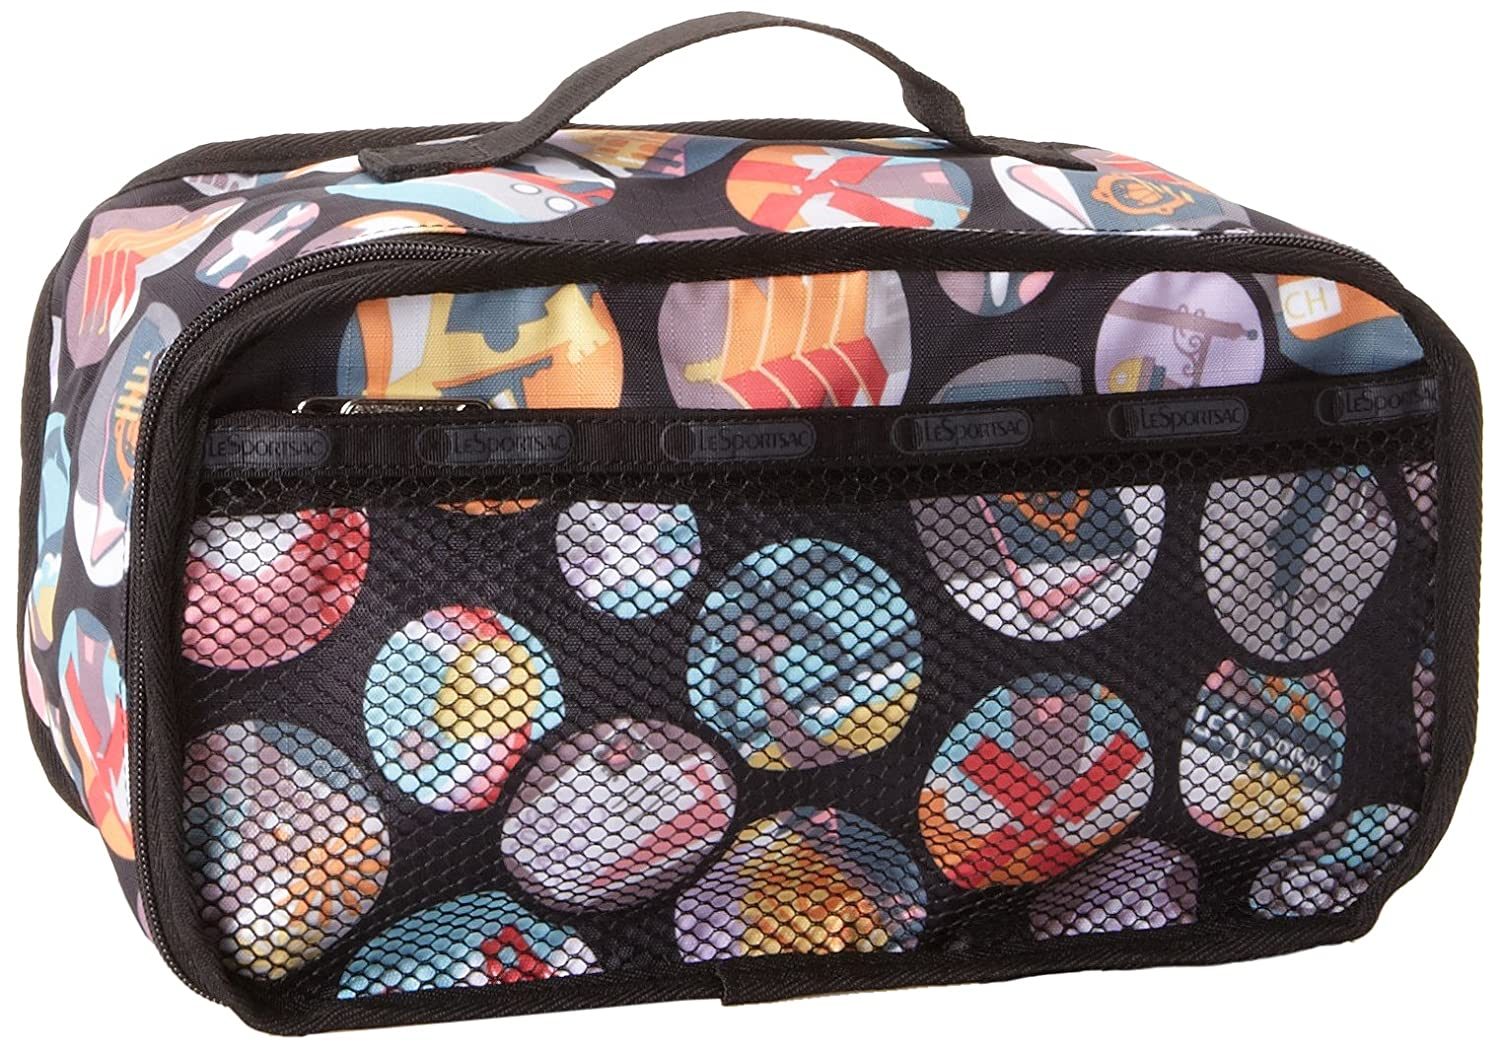 06709f30a677 LeSportsac Luggage Packing Cube Shoes, Excursion TR, One Size ...